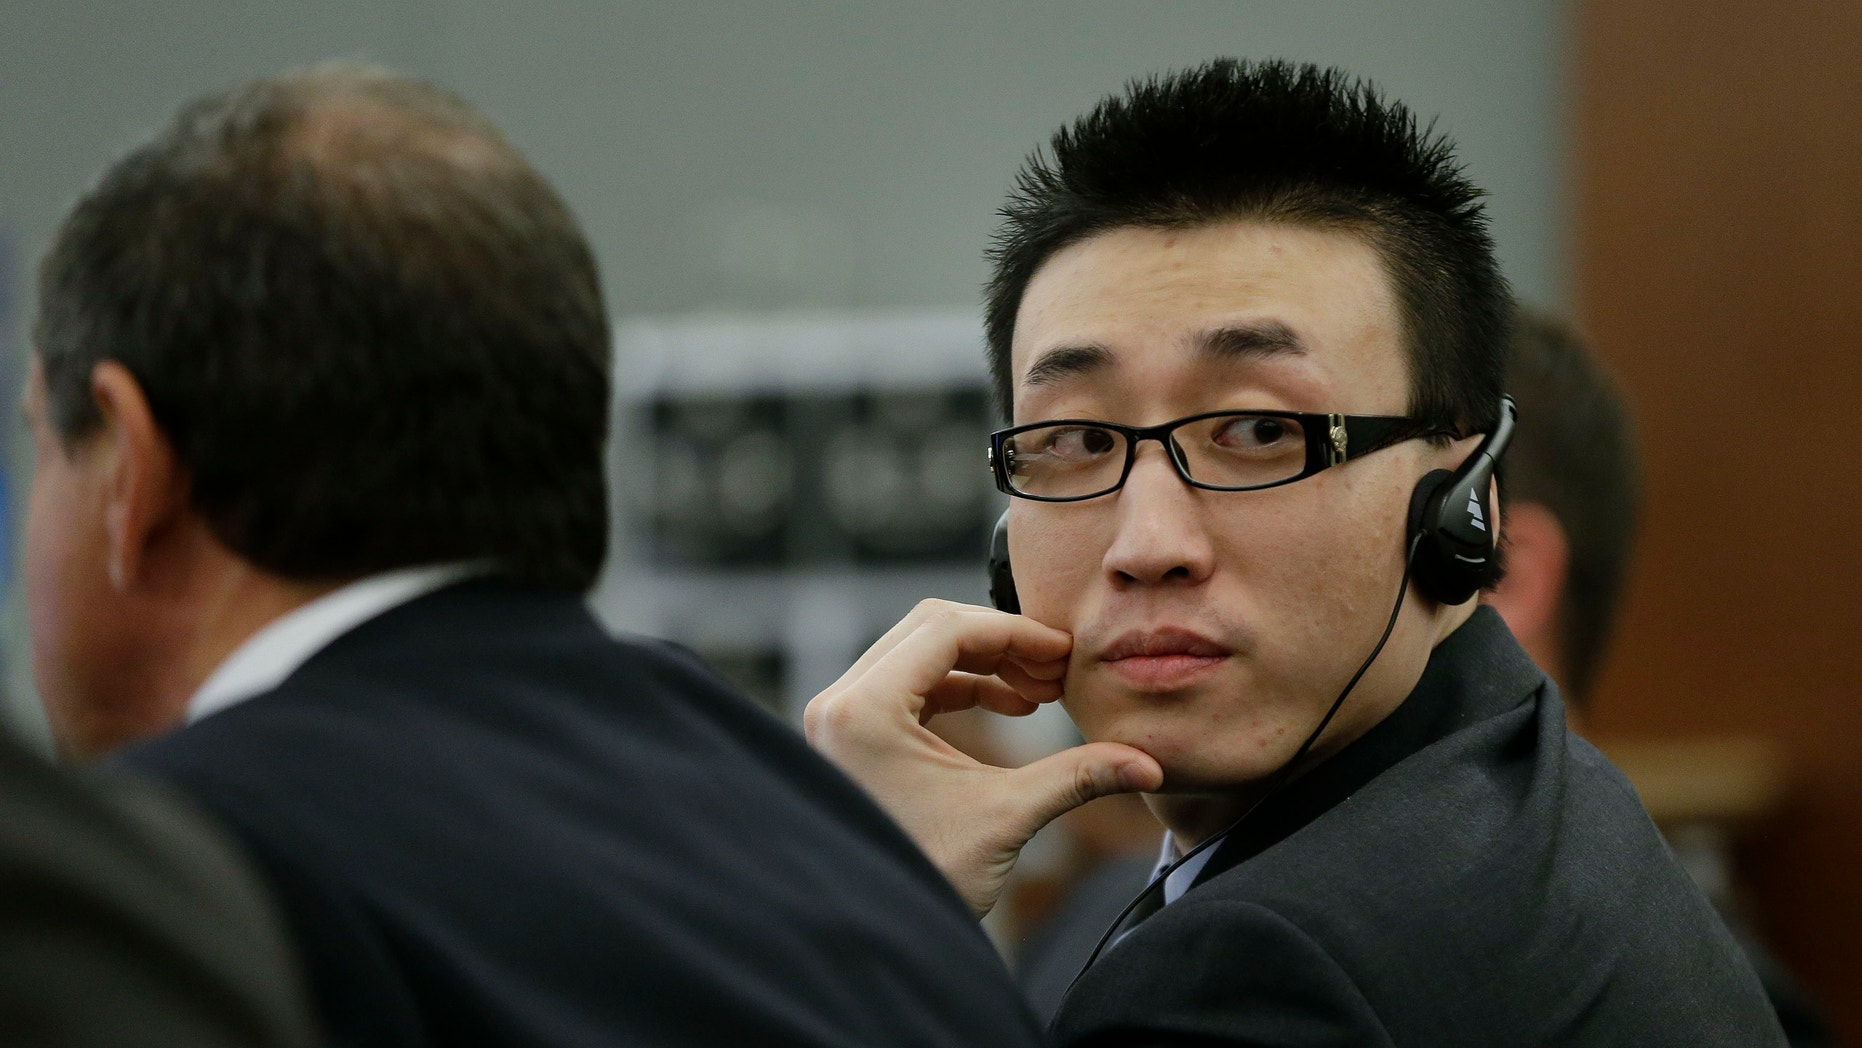 Nov. 28, 2012: Xiao Ye Bai listens in Clark County Court as  attorneys for the defense speak during arguments in his sentencing in this file photo taken in Las Vegas.